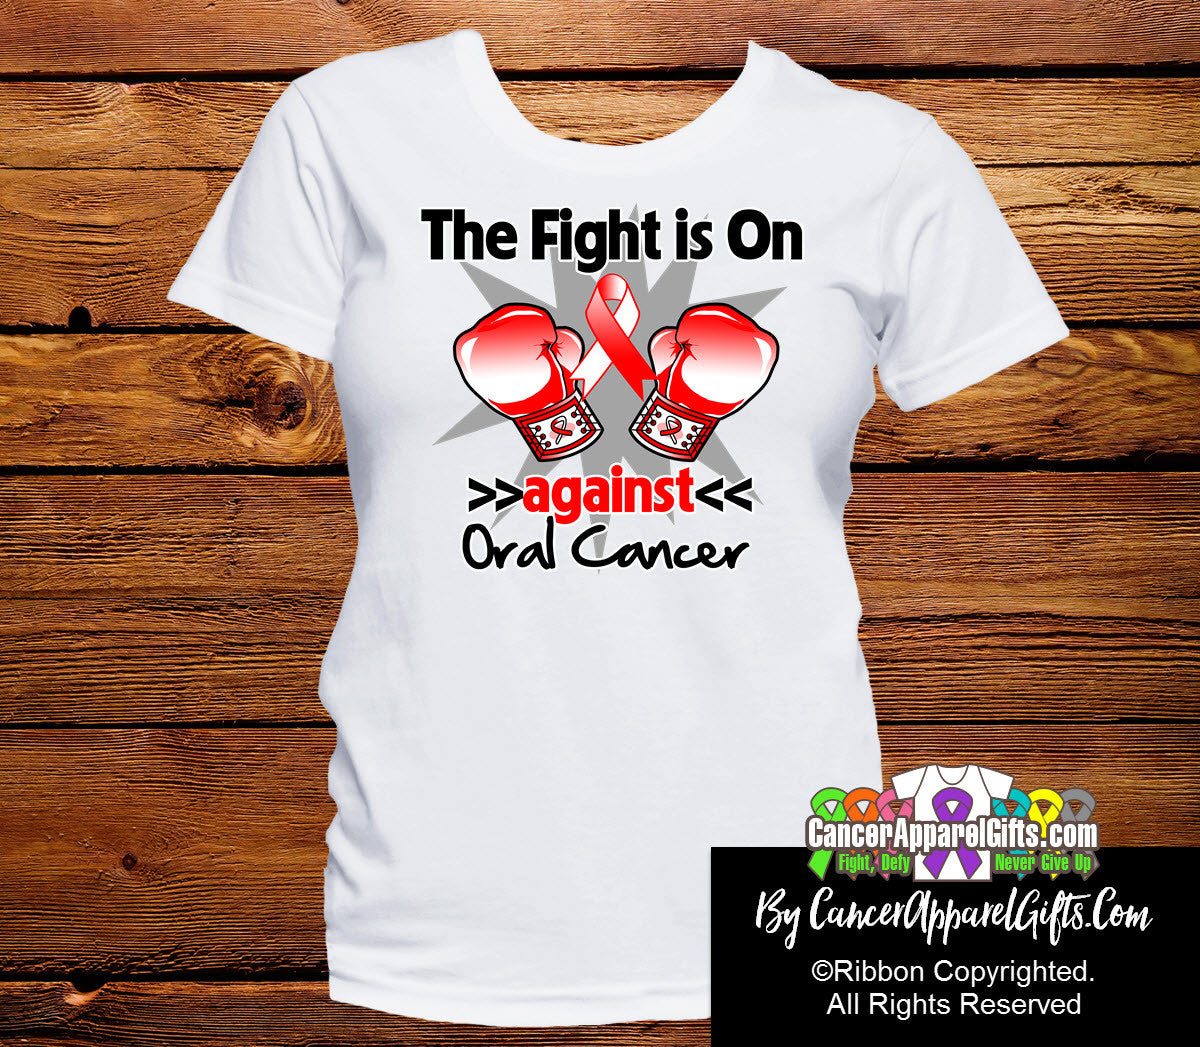 Oral Cancer The Fight is On Ladies Shirts